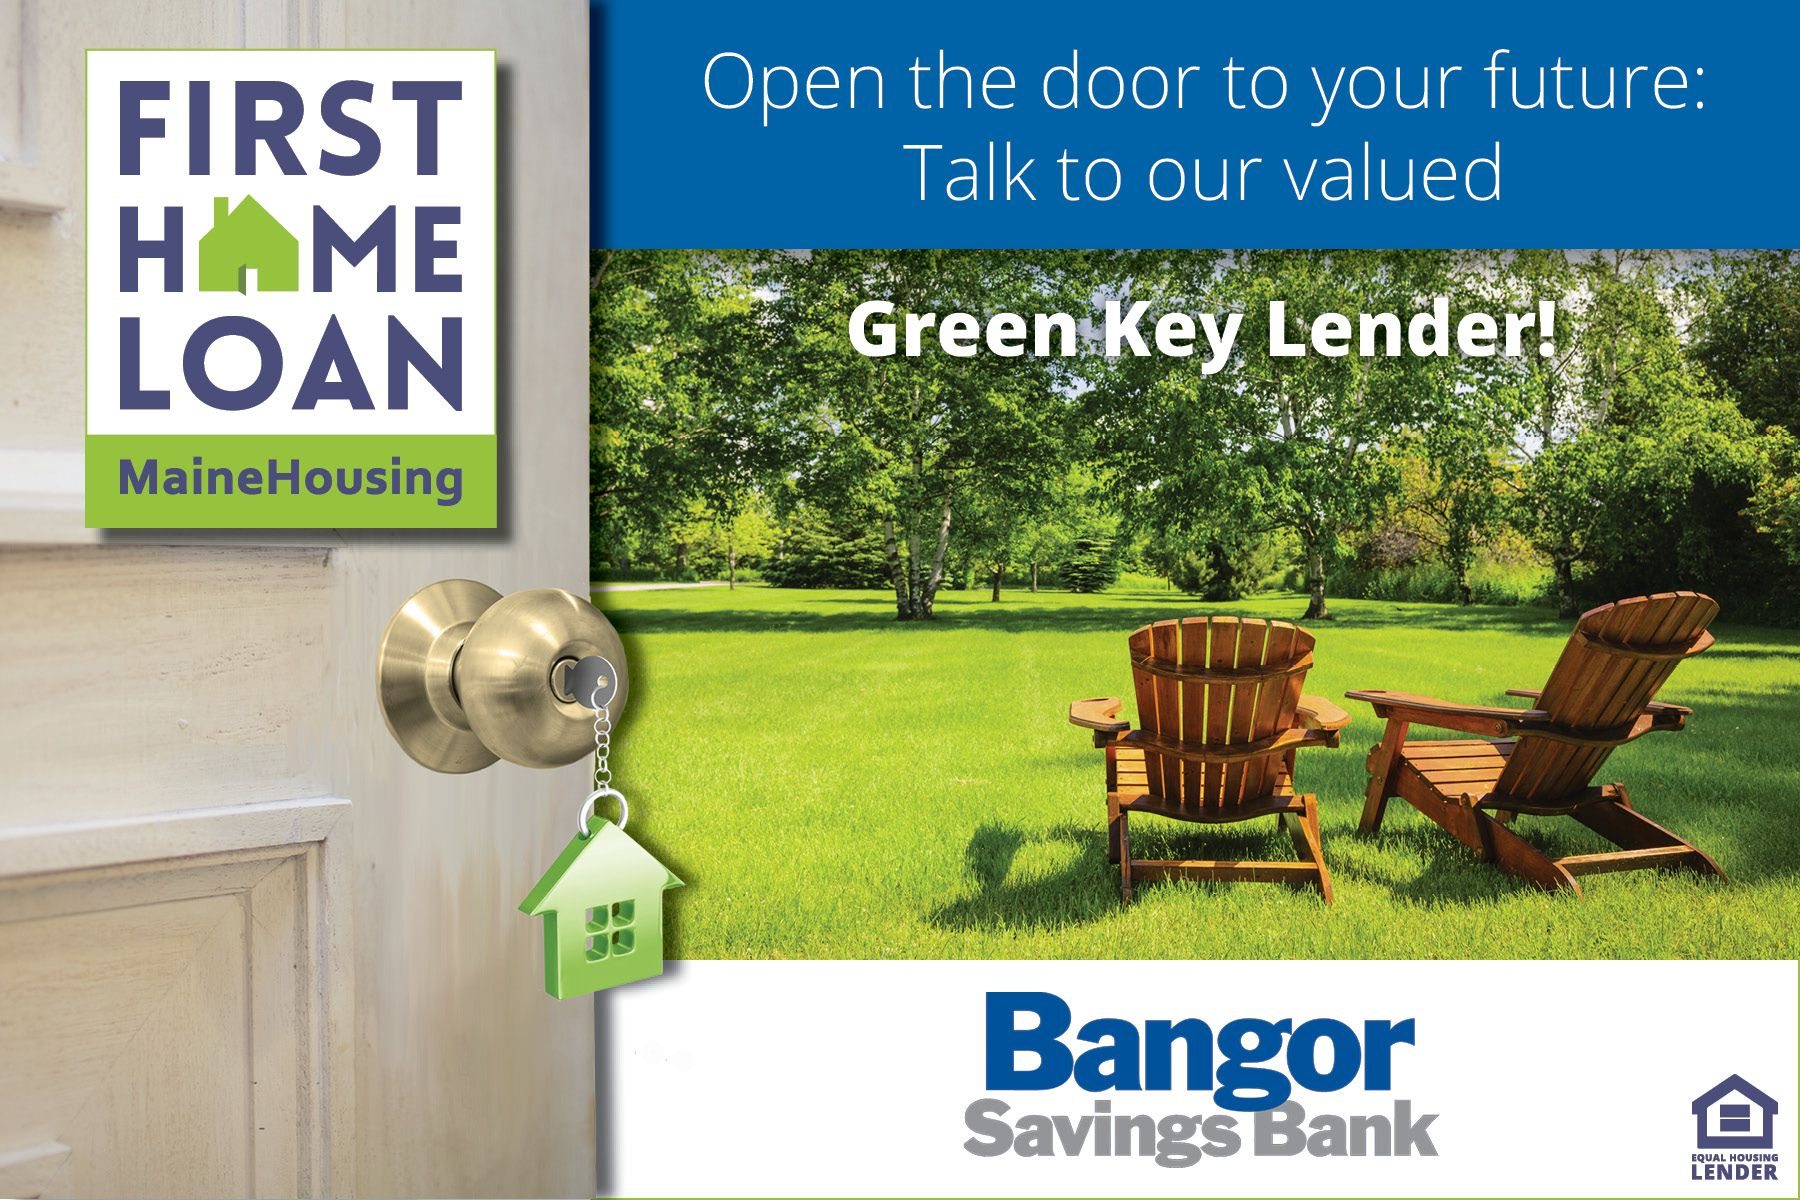 Meet today's Green Key Lender: Bangor Savings Bank. Ask Bangor Savings about our First Home Loan and $3,500 towards closing costs! mainehousing.org/mainehousing-lenders